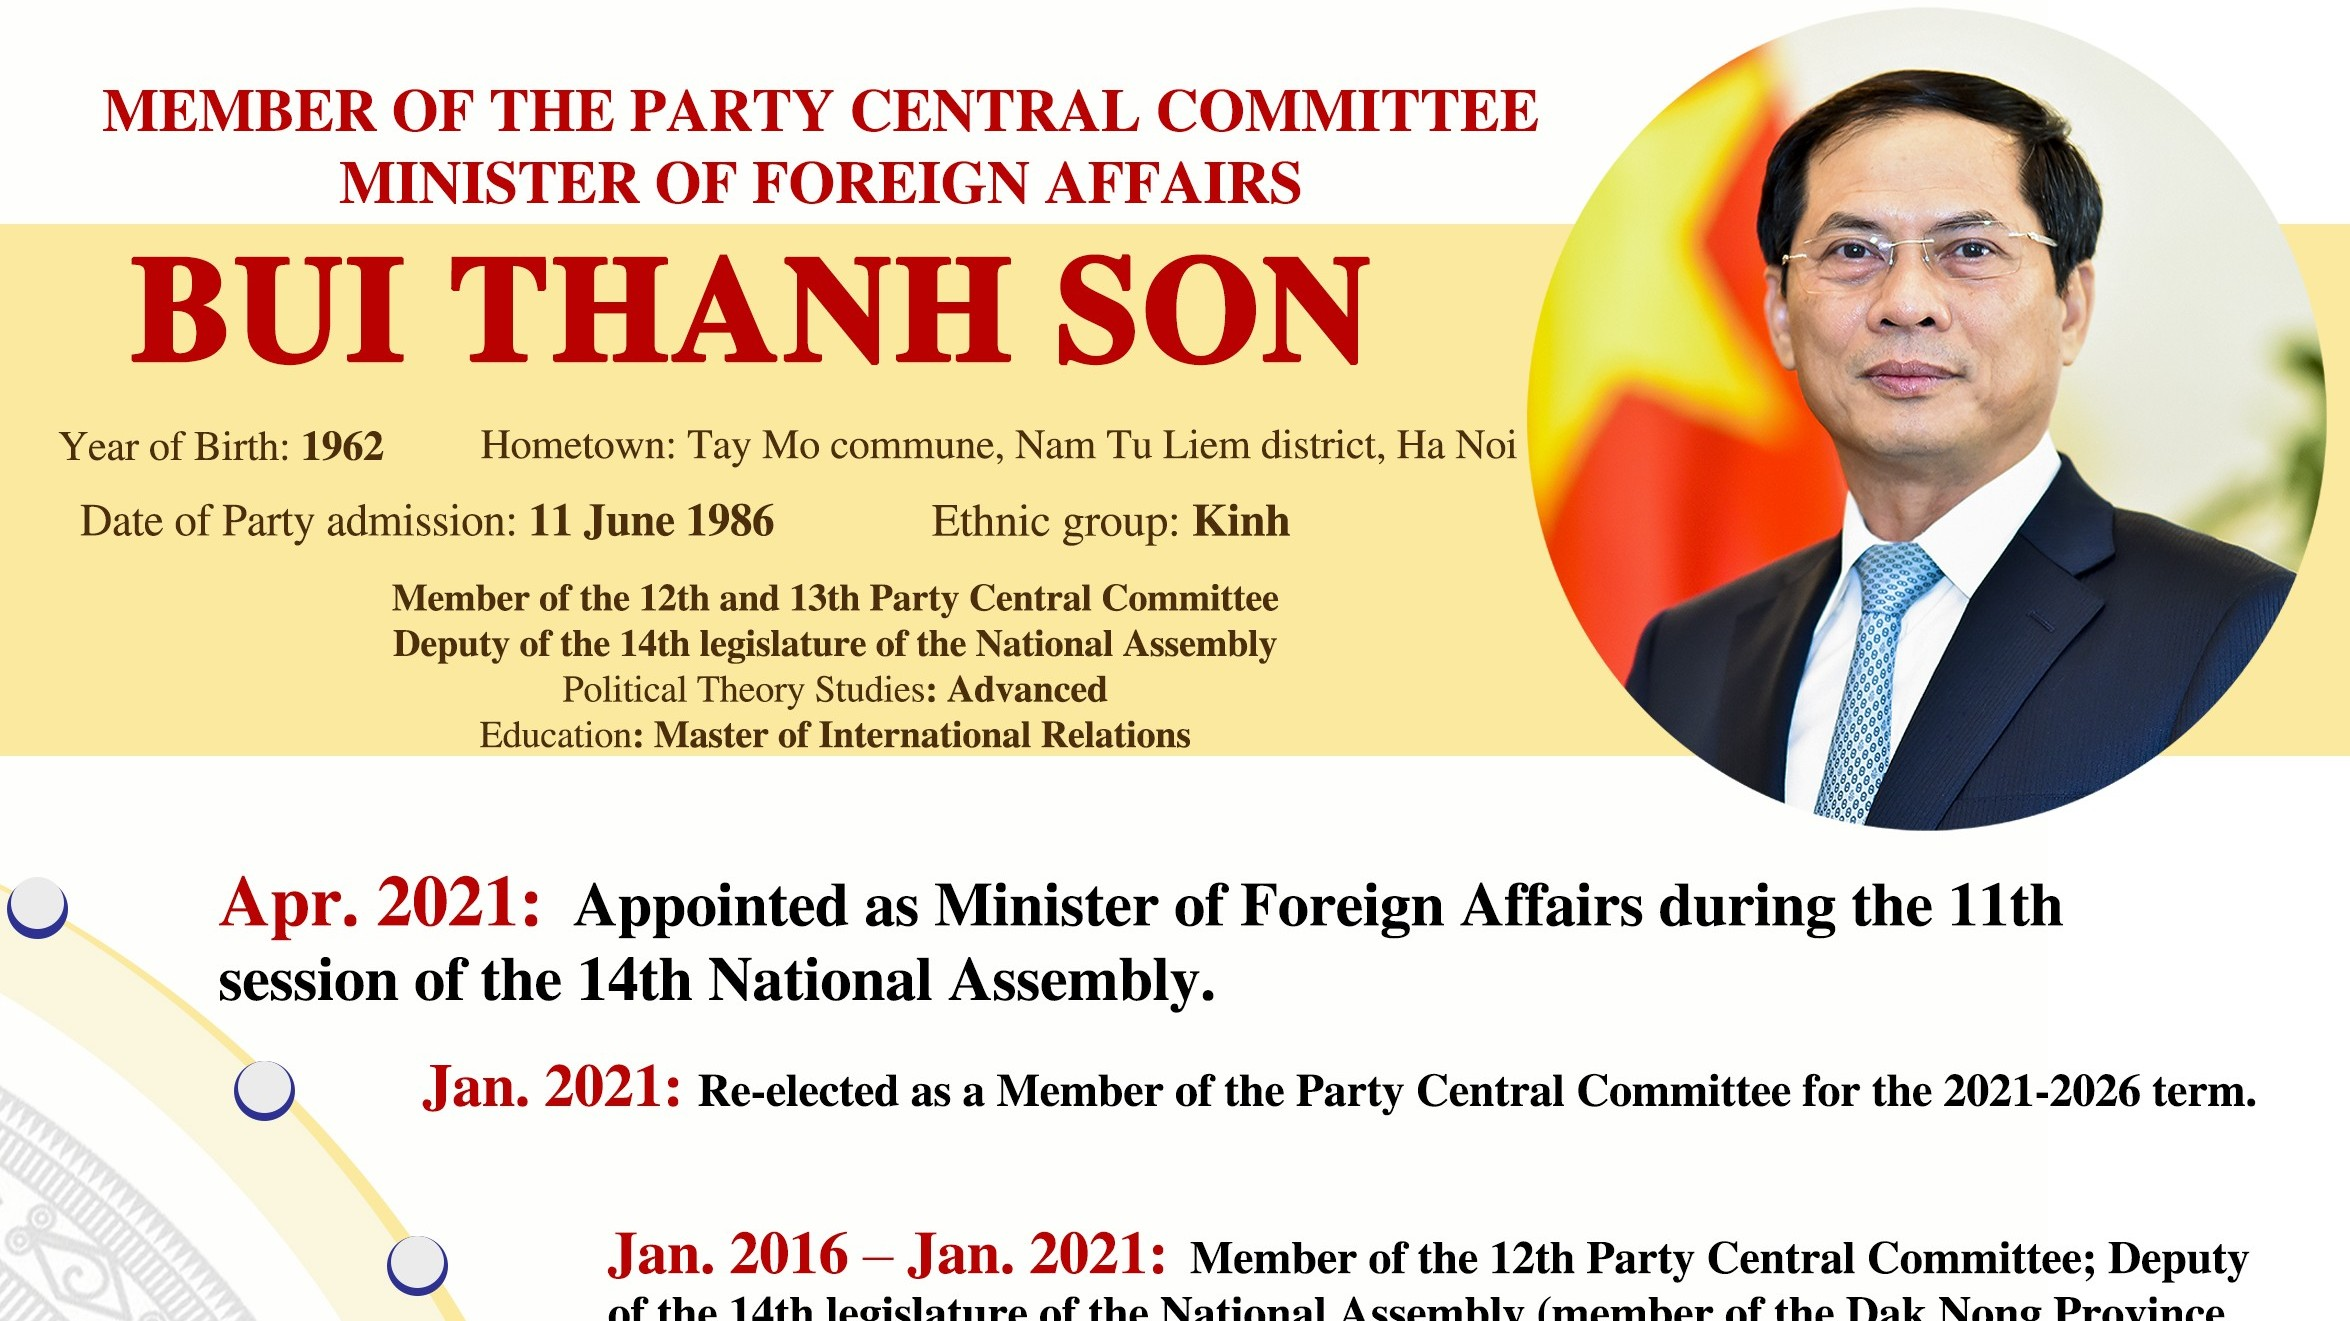 (Inforgraphic) Minister of Foreign Affairs Bui Thanh Son